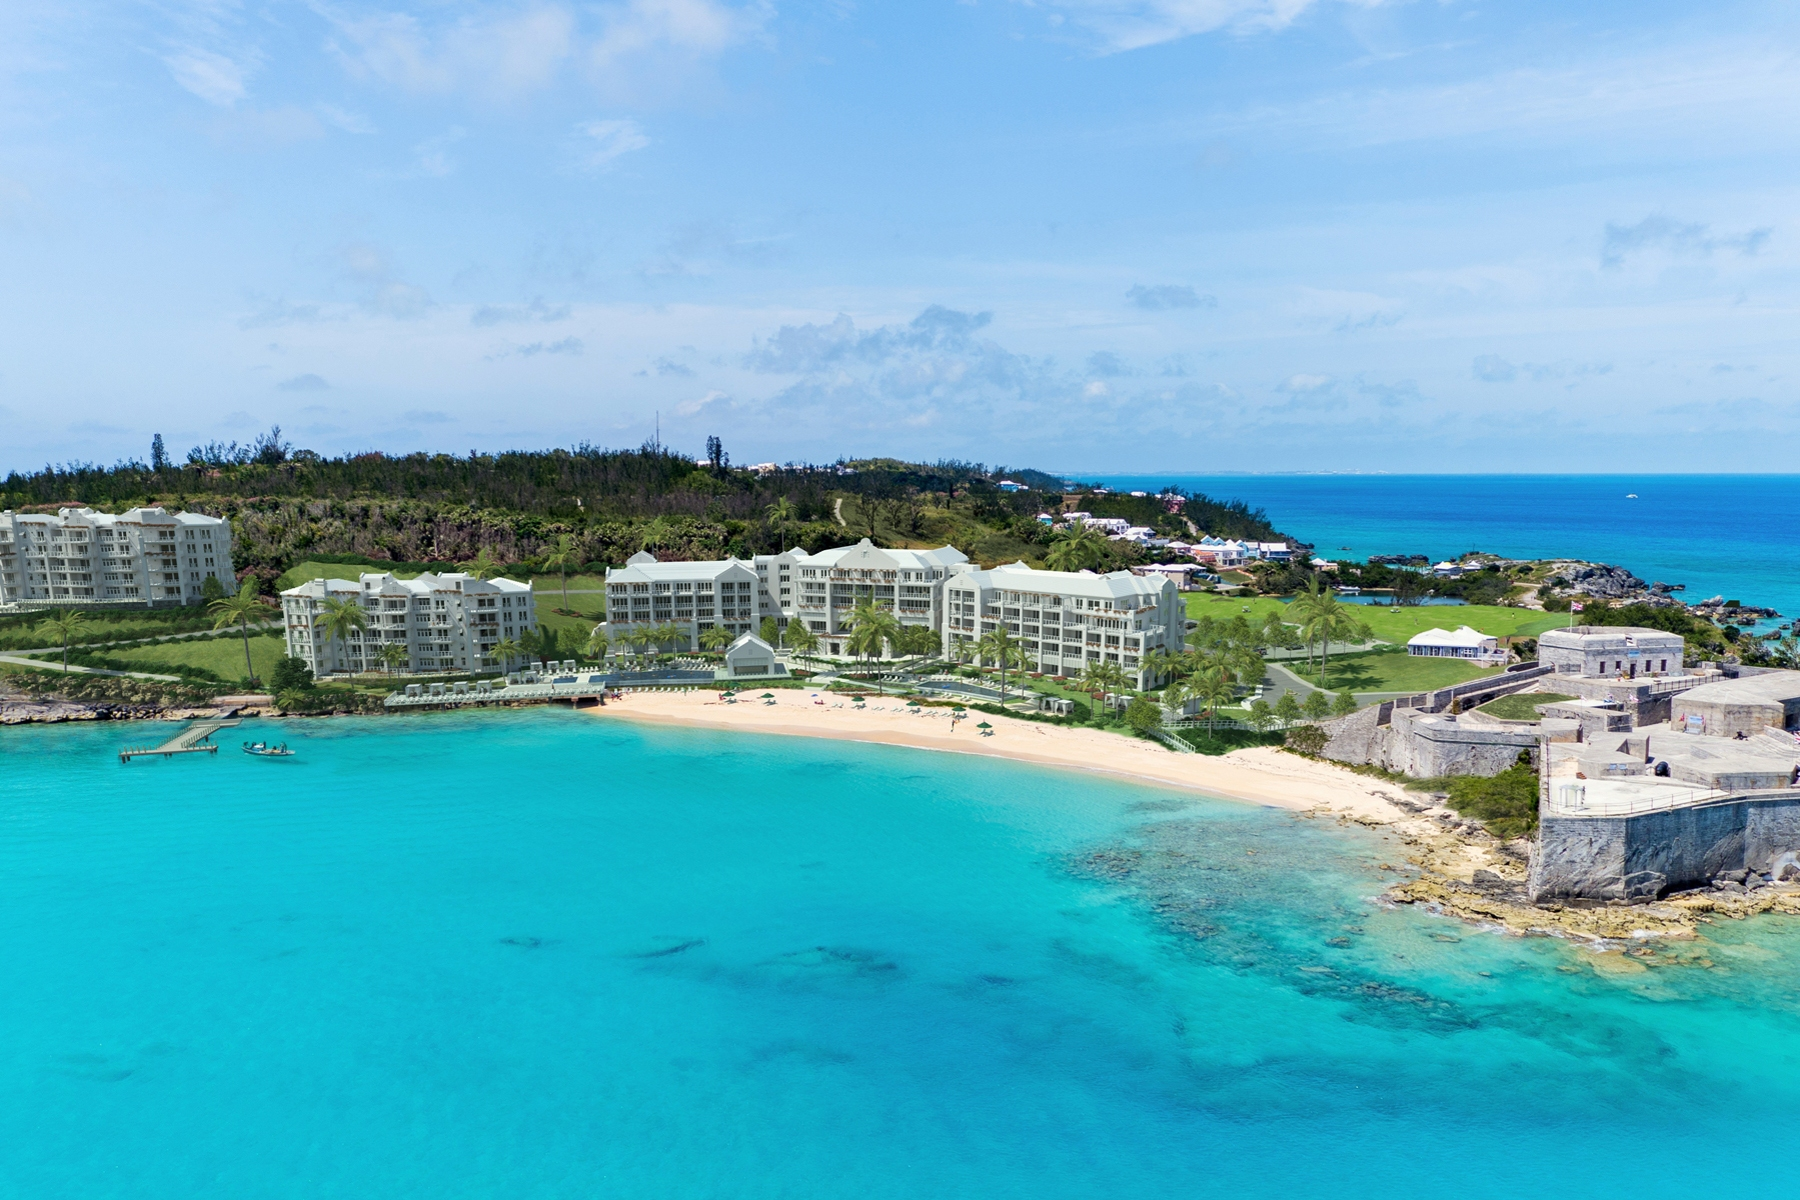 Condominiums for Sale at The Residences at St. Regis Bermuda Unit 1B, 2B, 3B & 4B St. Catherine's Beach Other Bermuda, Other Areas In Bermuda GE03 Bermuda